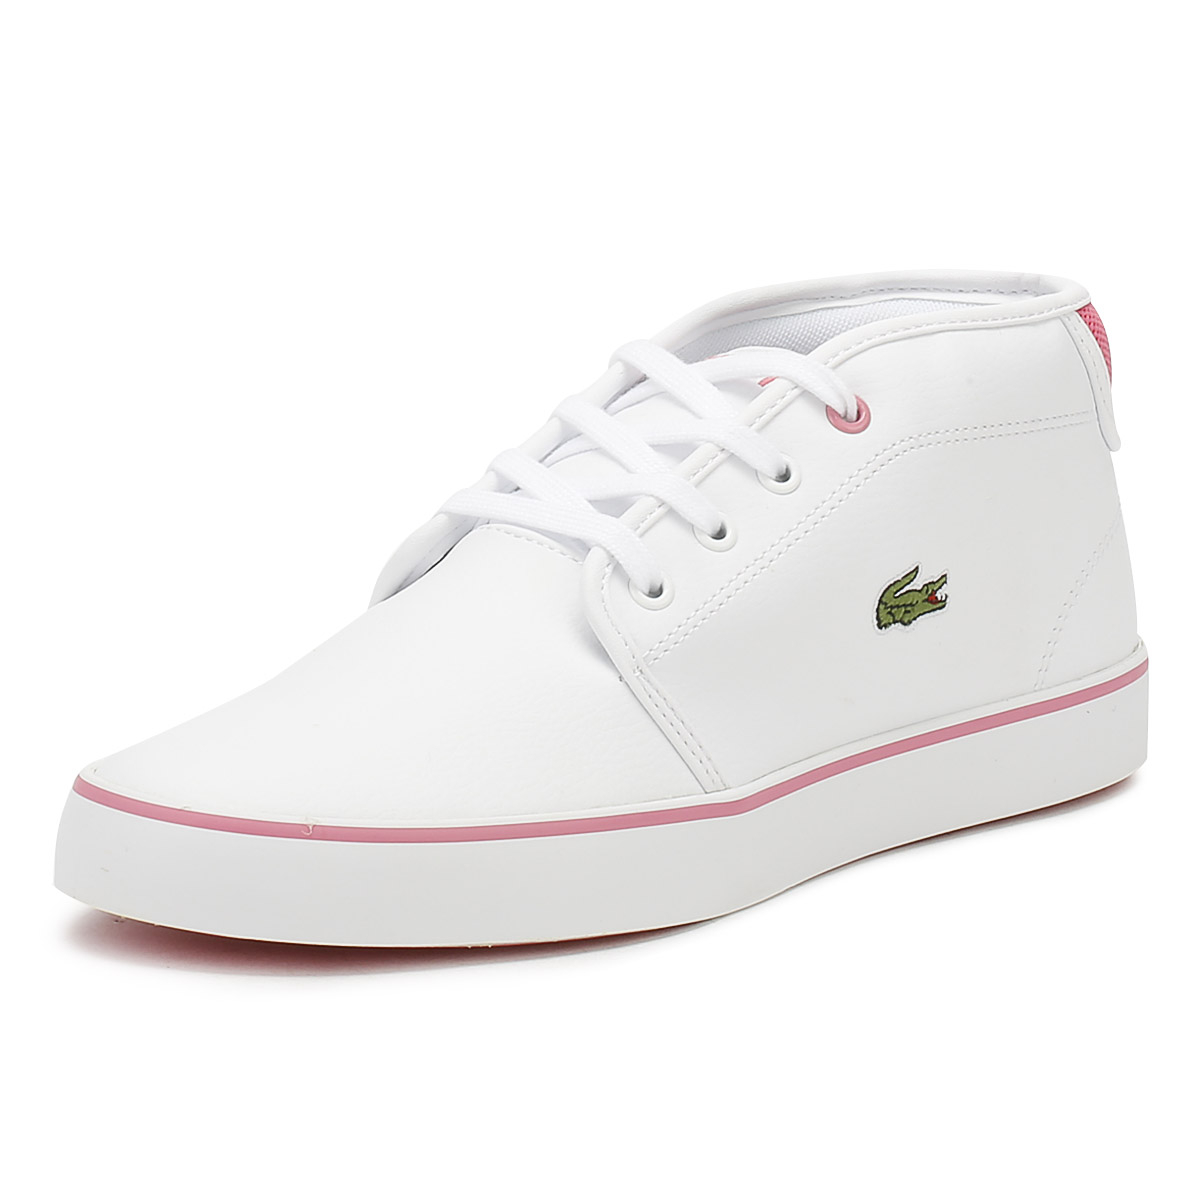 Details about Lacoste Junior Trainers White  Pink AMPTHILL 118 1 Kids  Leather Casual Shoes 22491c318fb